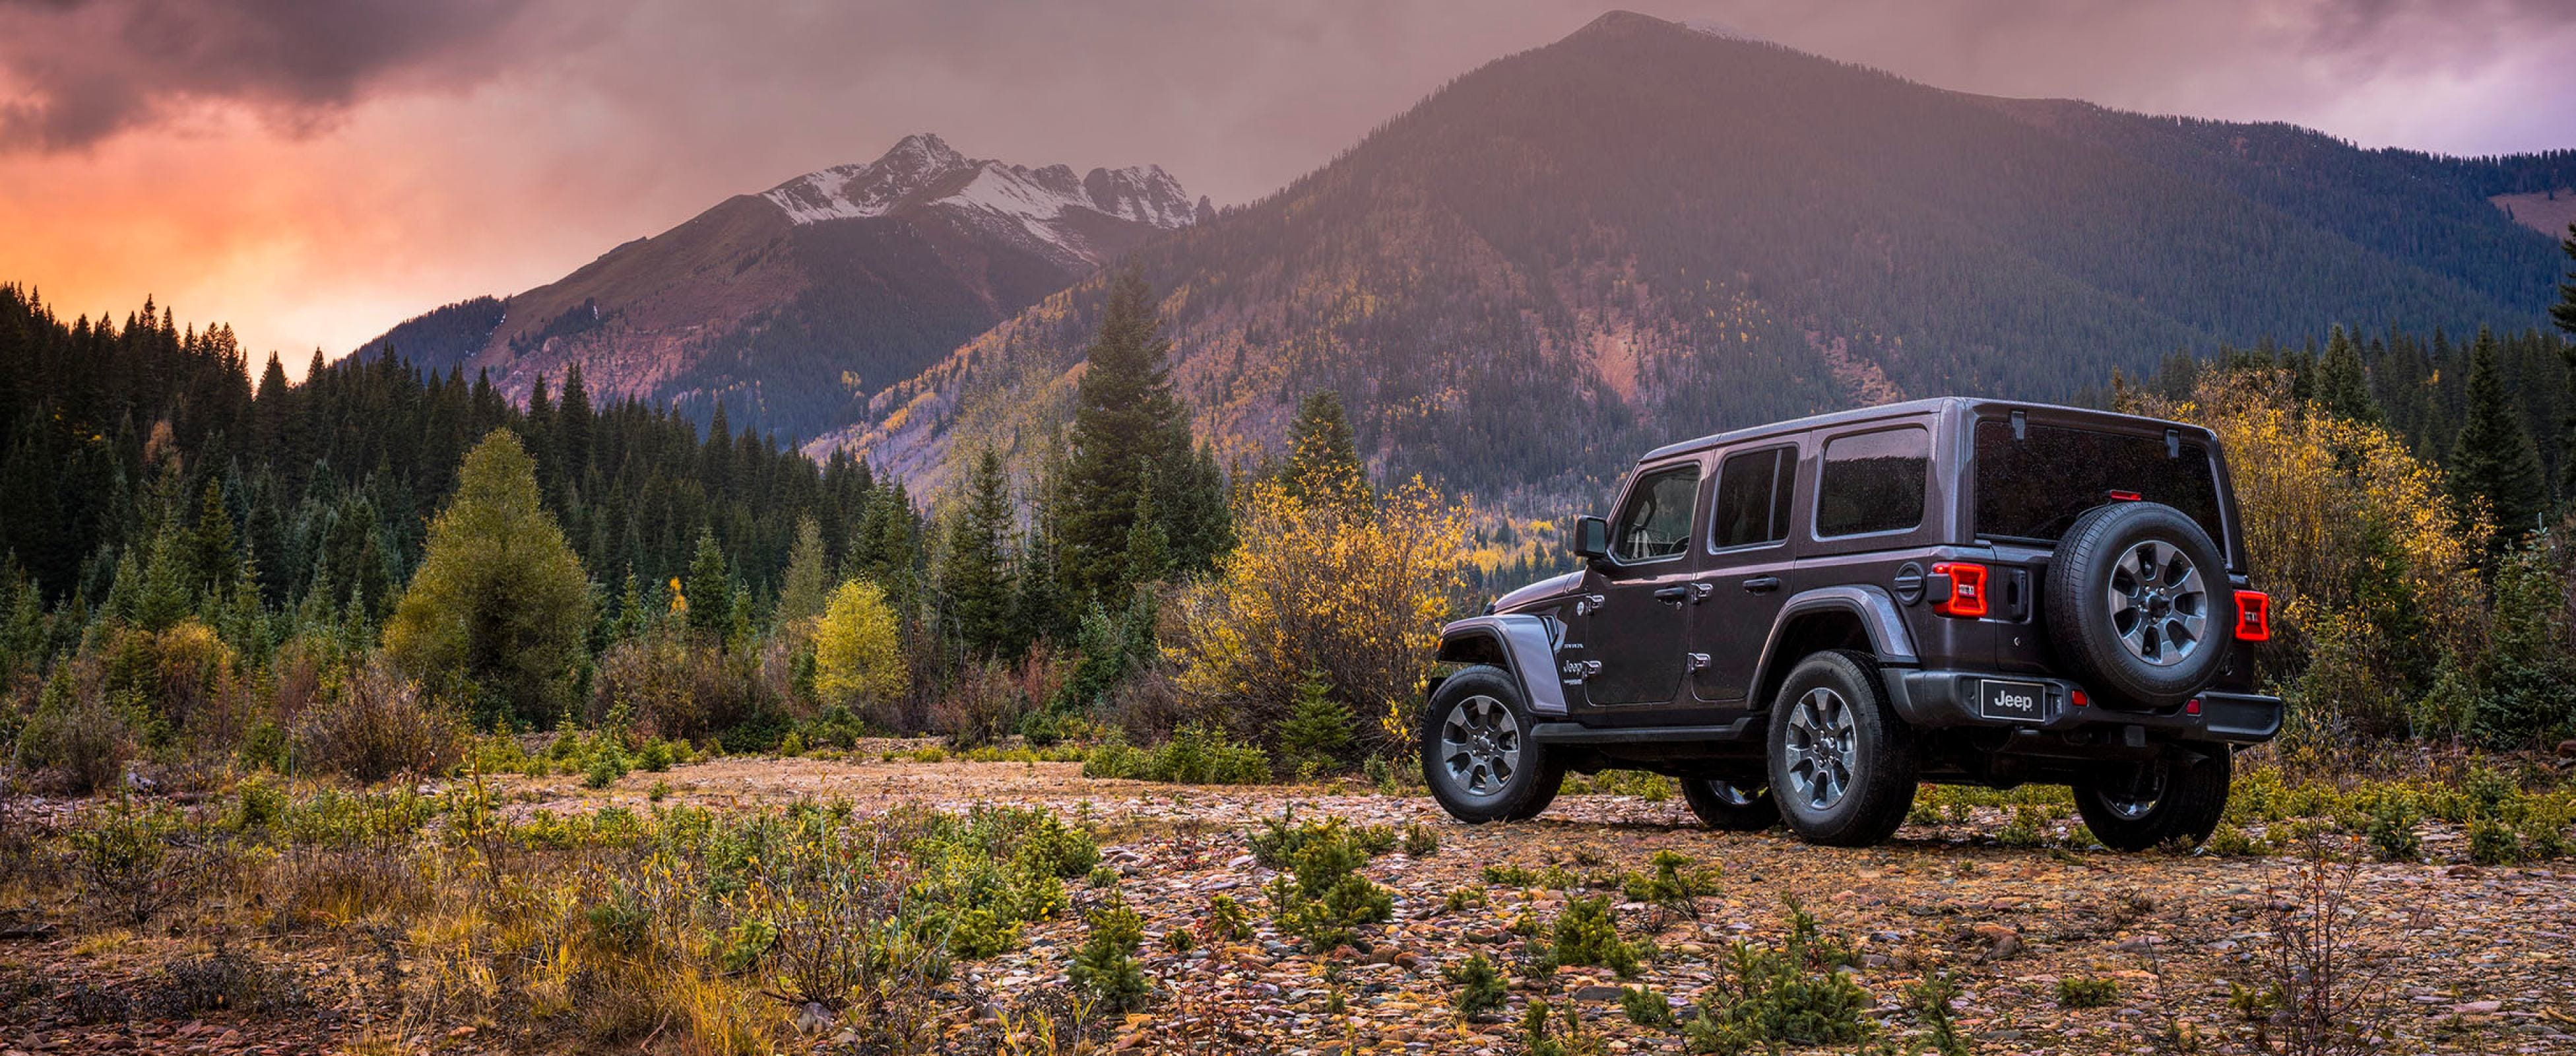 Me Touch Unlimited Avis save on jeep wrangler rental | avis rent a car